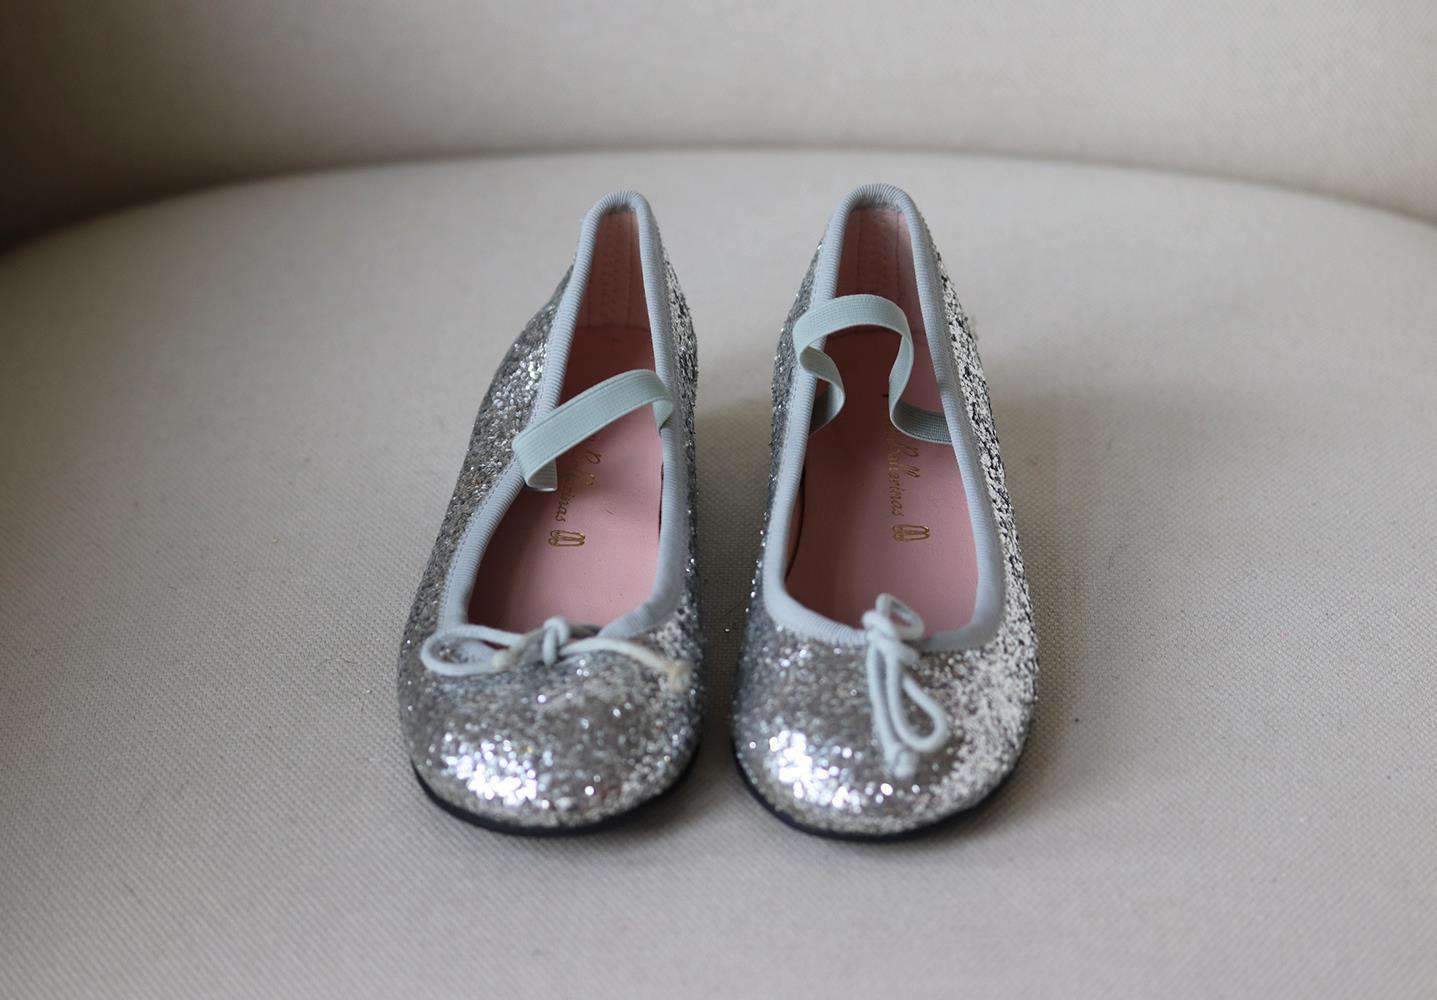 PRETTY BALLERINAS KIDS GIRLS GLITTER SHOES EU 30 UK 12